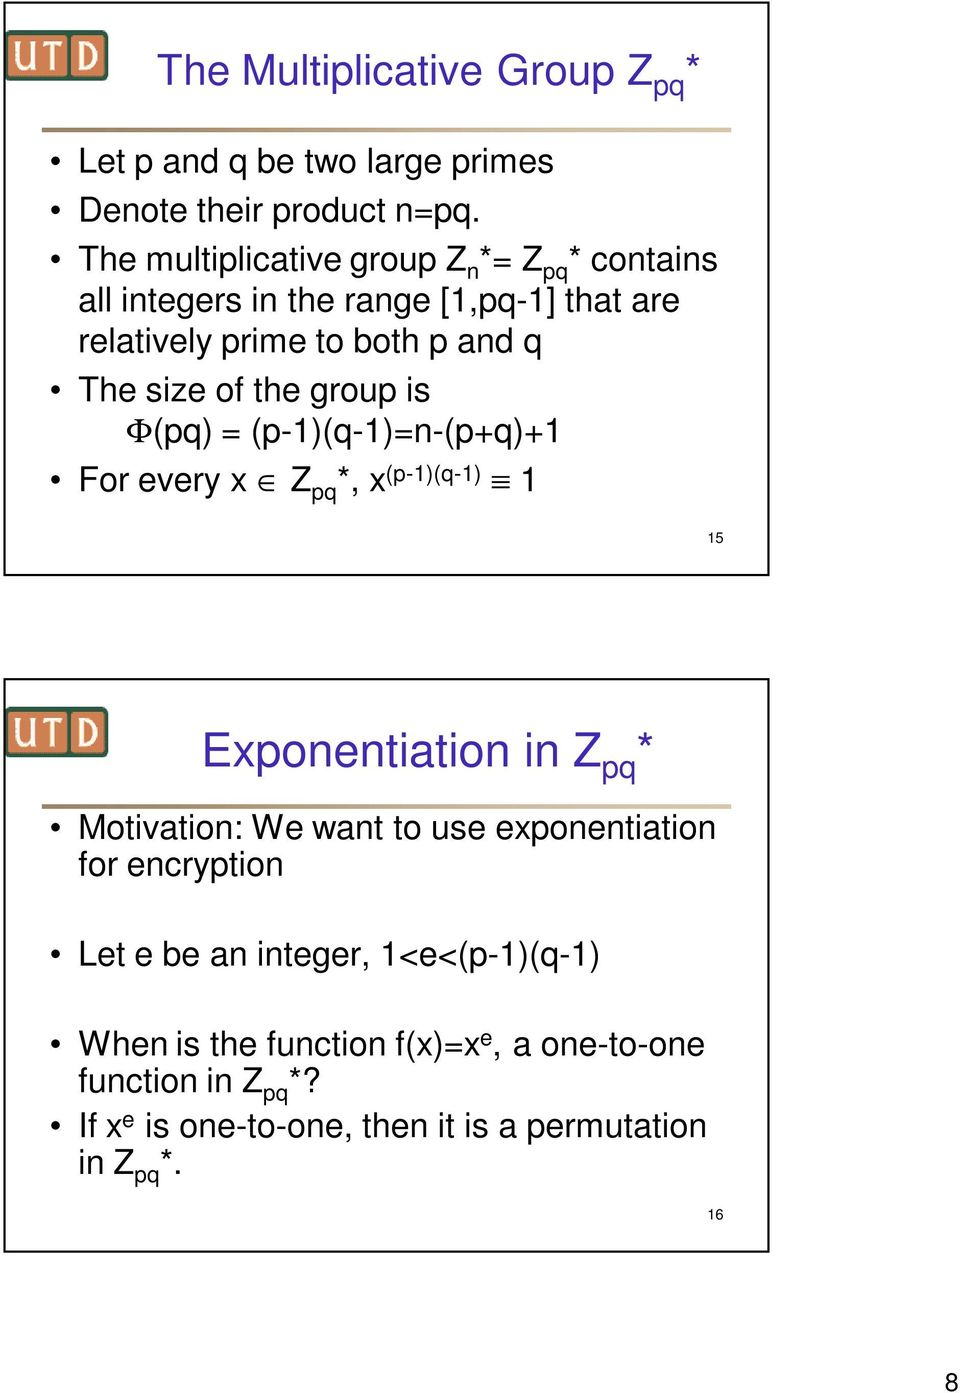 the group is Φ(pq) = (p-1)(q-1)=n-(p+q)+1 For every x Z pq *, x (p-1)(q-1) 1 15 Exponentiation in Z pq * Motivation: We want to use